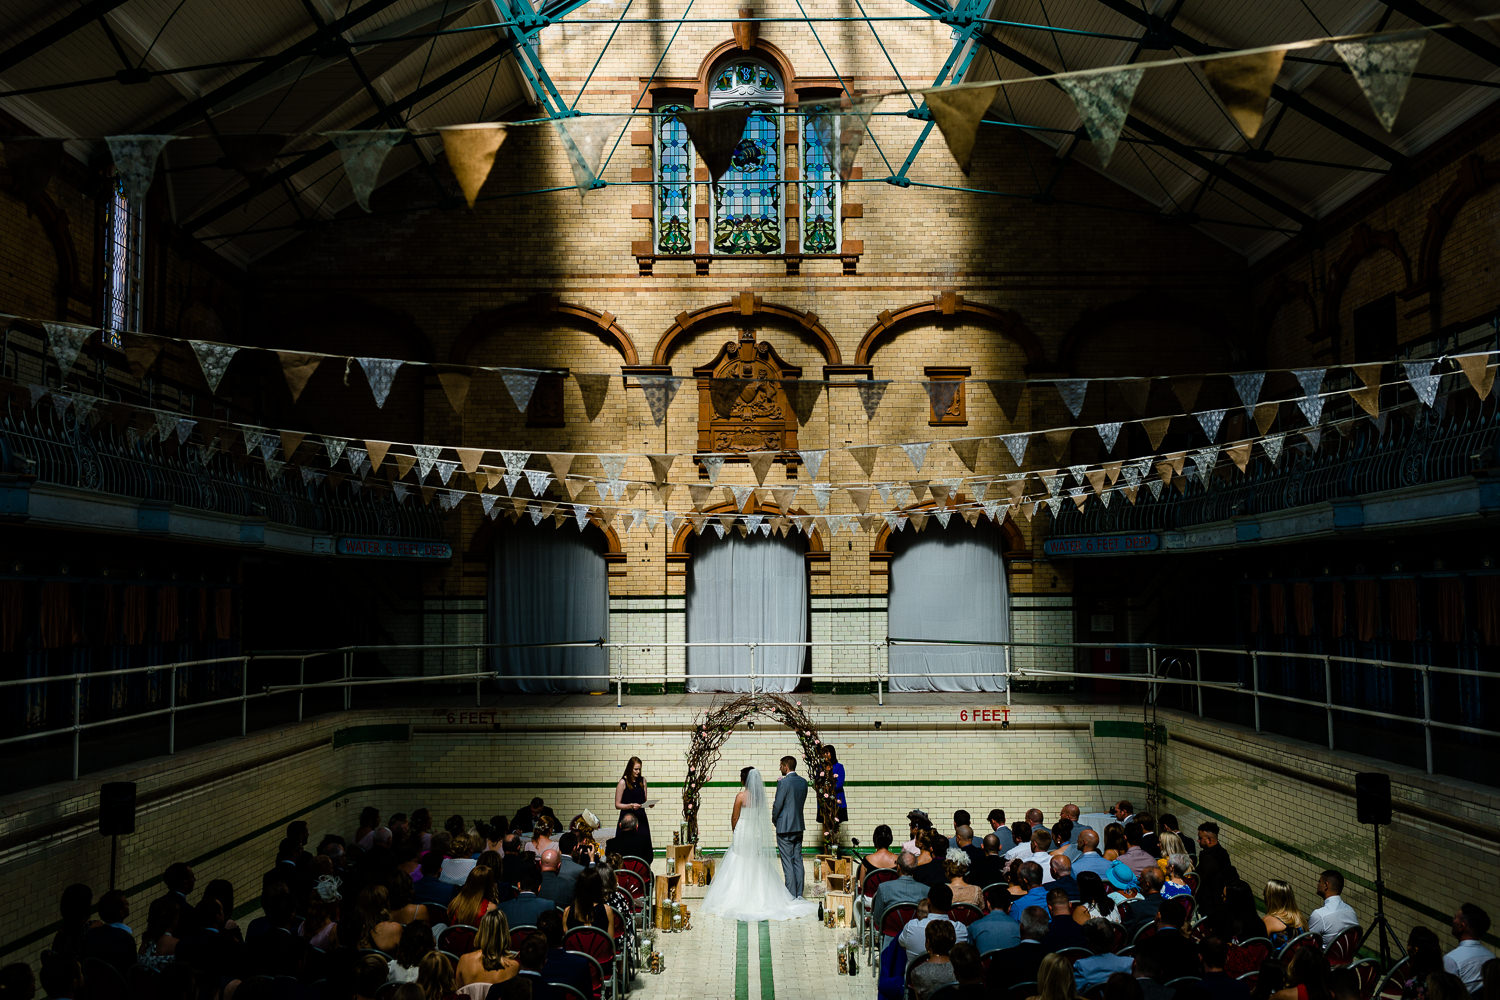 Bathed in light, a ceremony at Victoria Baths